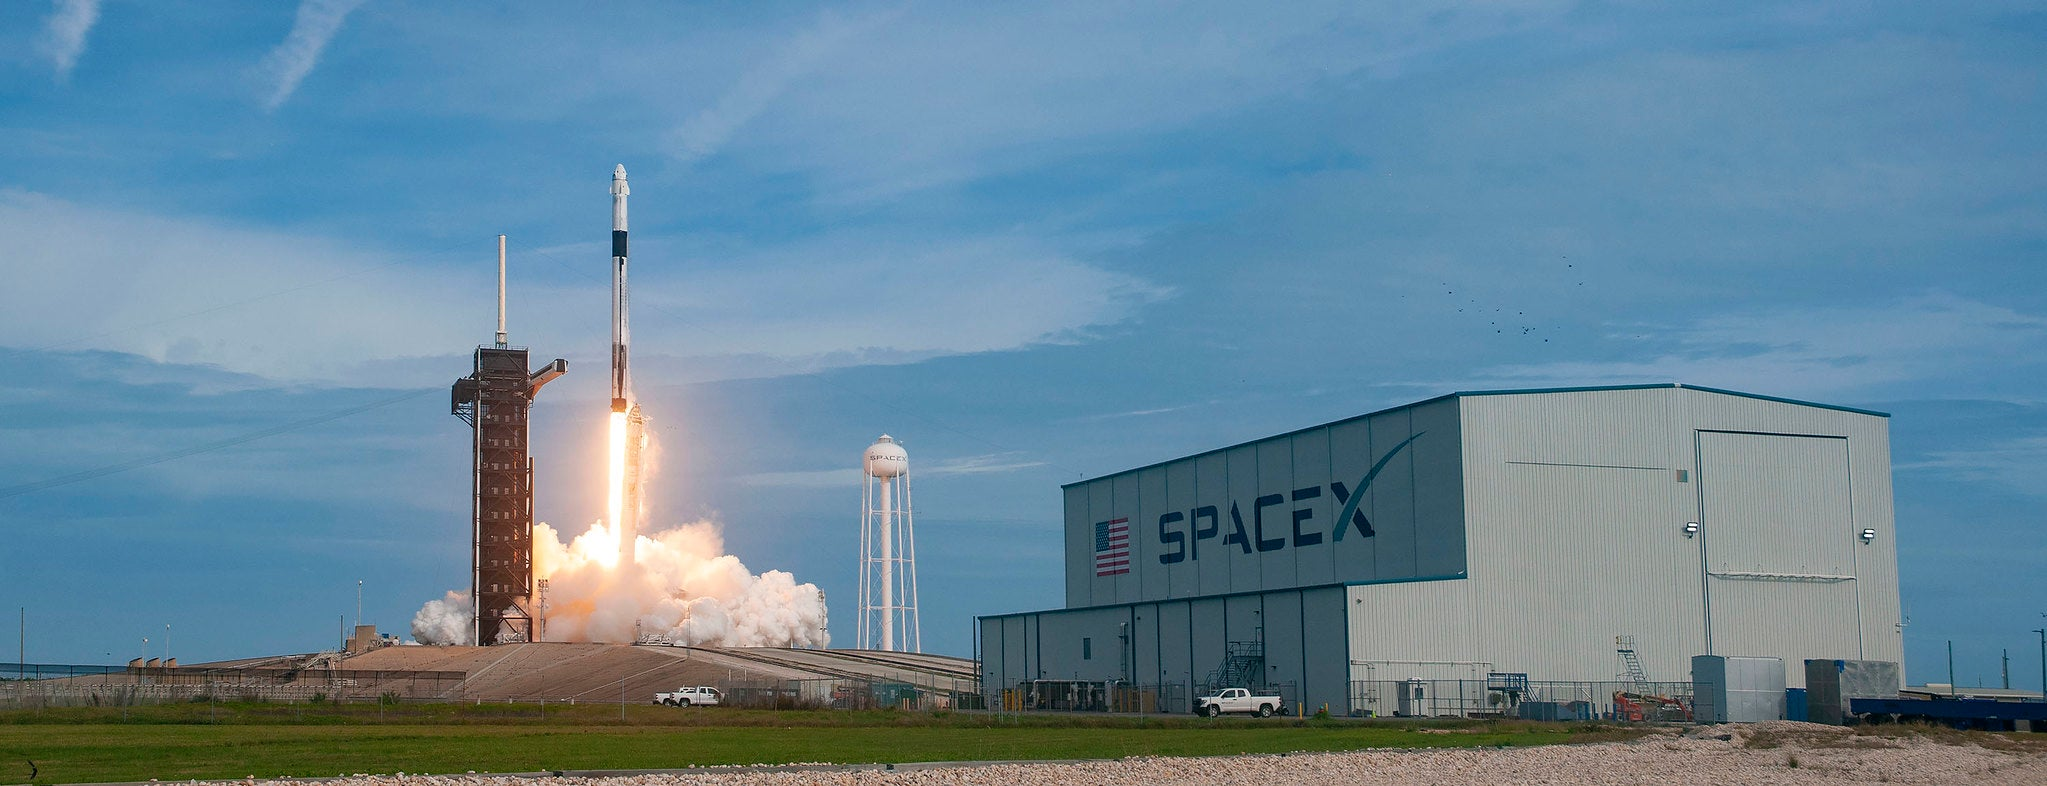 SpaceX Finally Has Enough Satellites to Offer Internet Service, According to Elon Musk